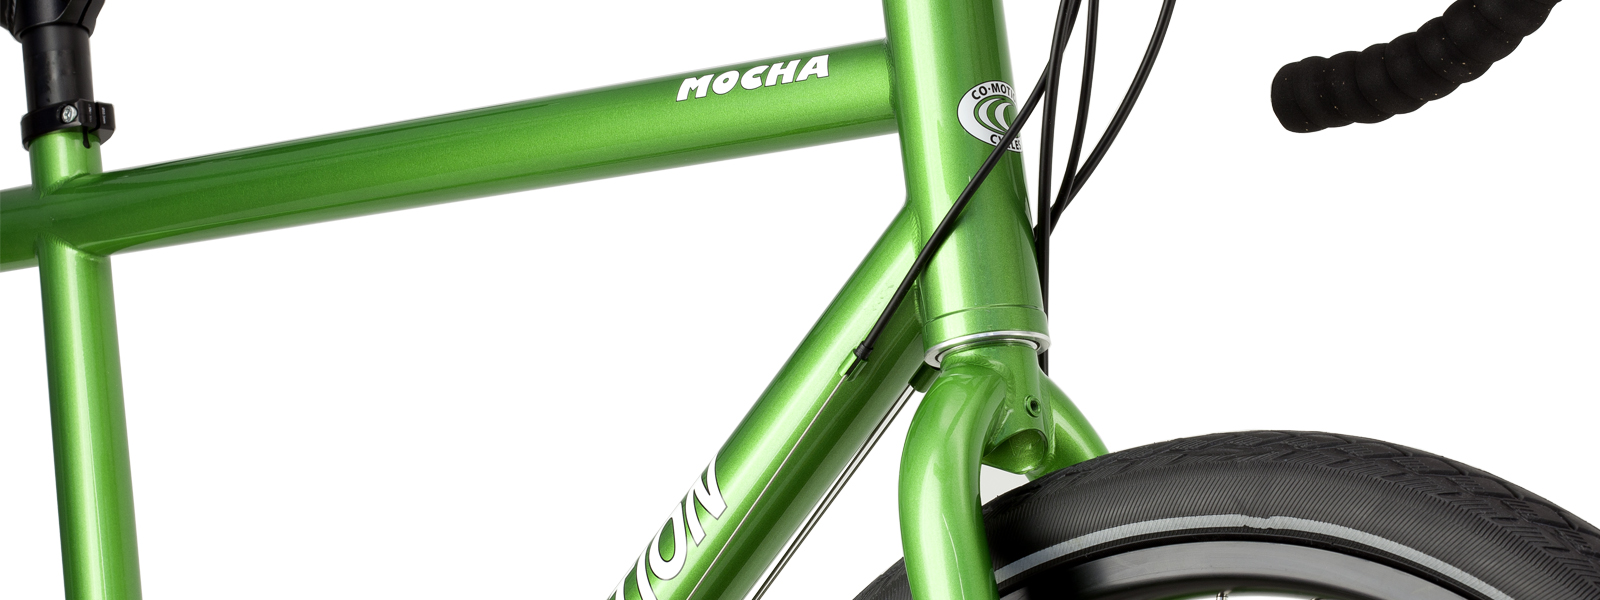 Co-Motion Mocha - Bicycle Outfitter Northern California 94024